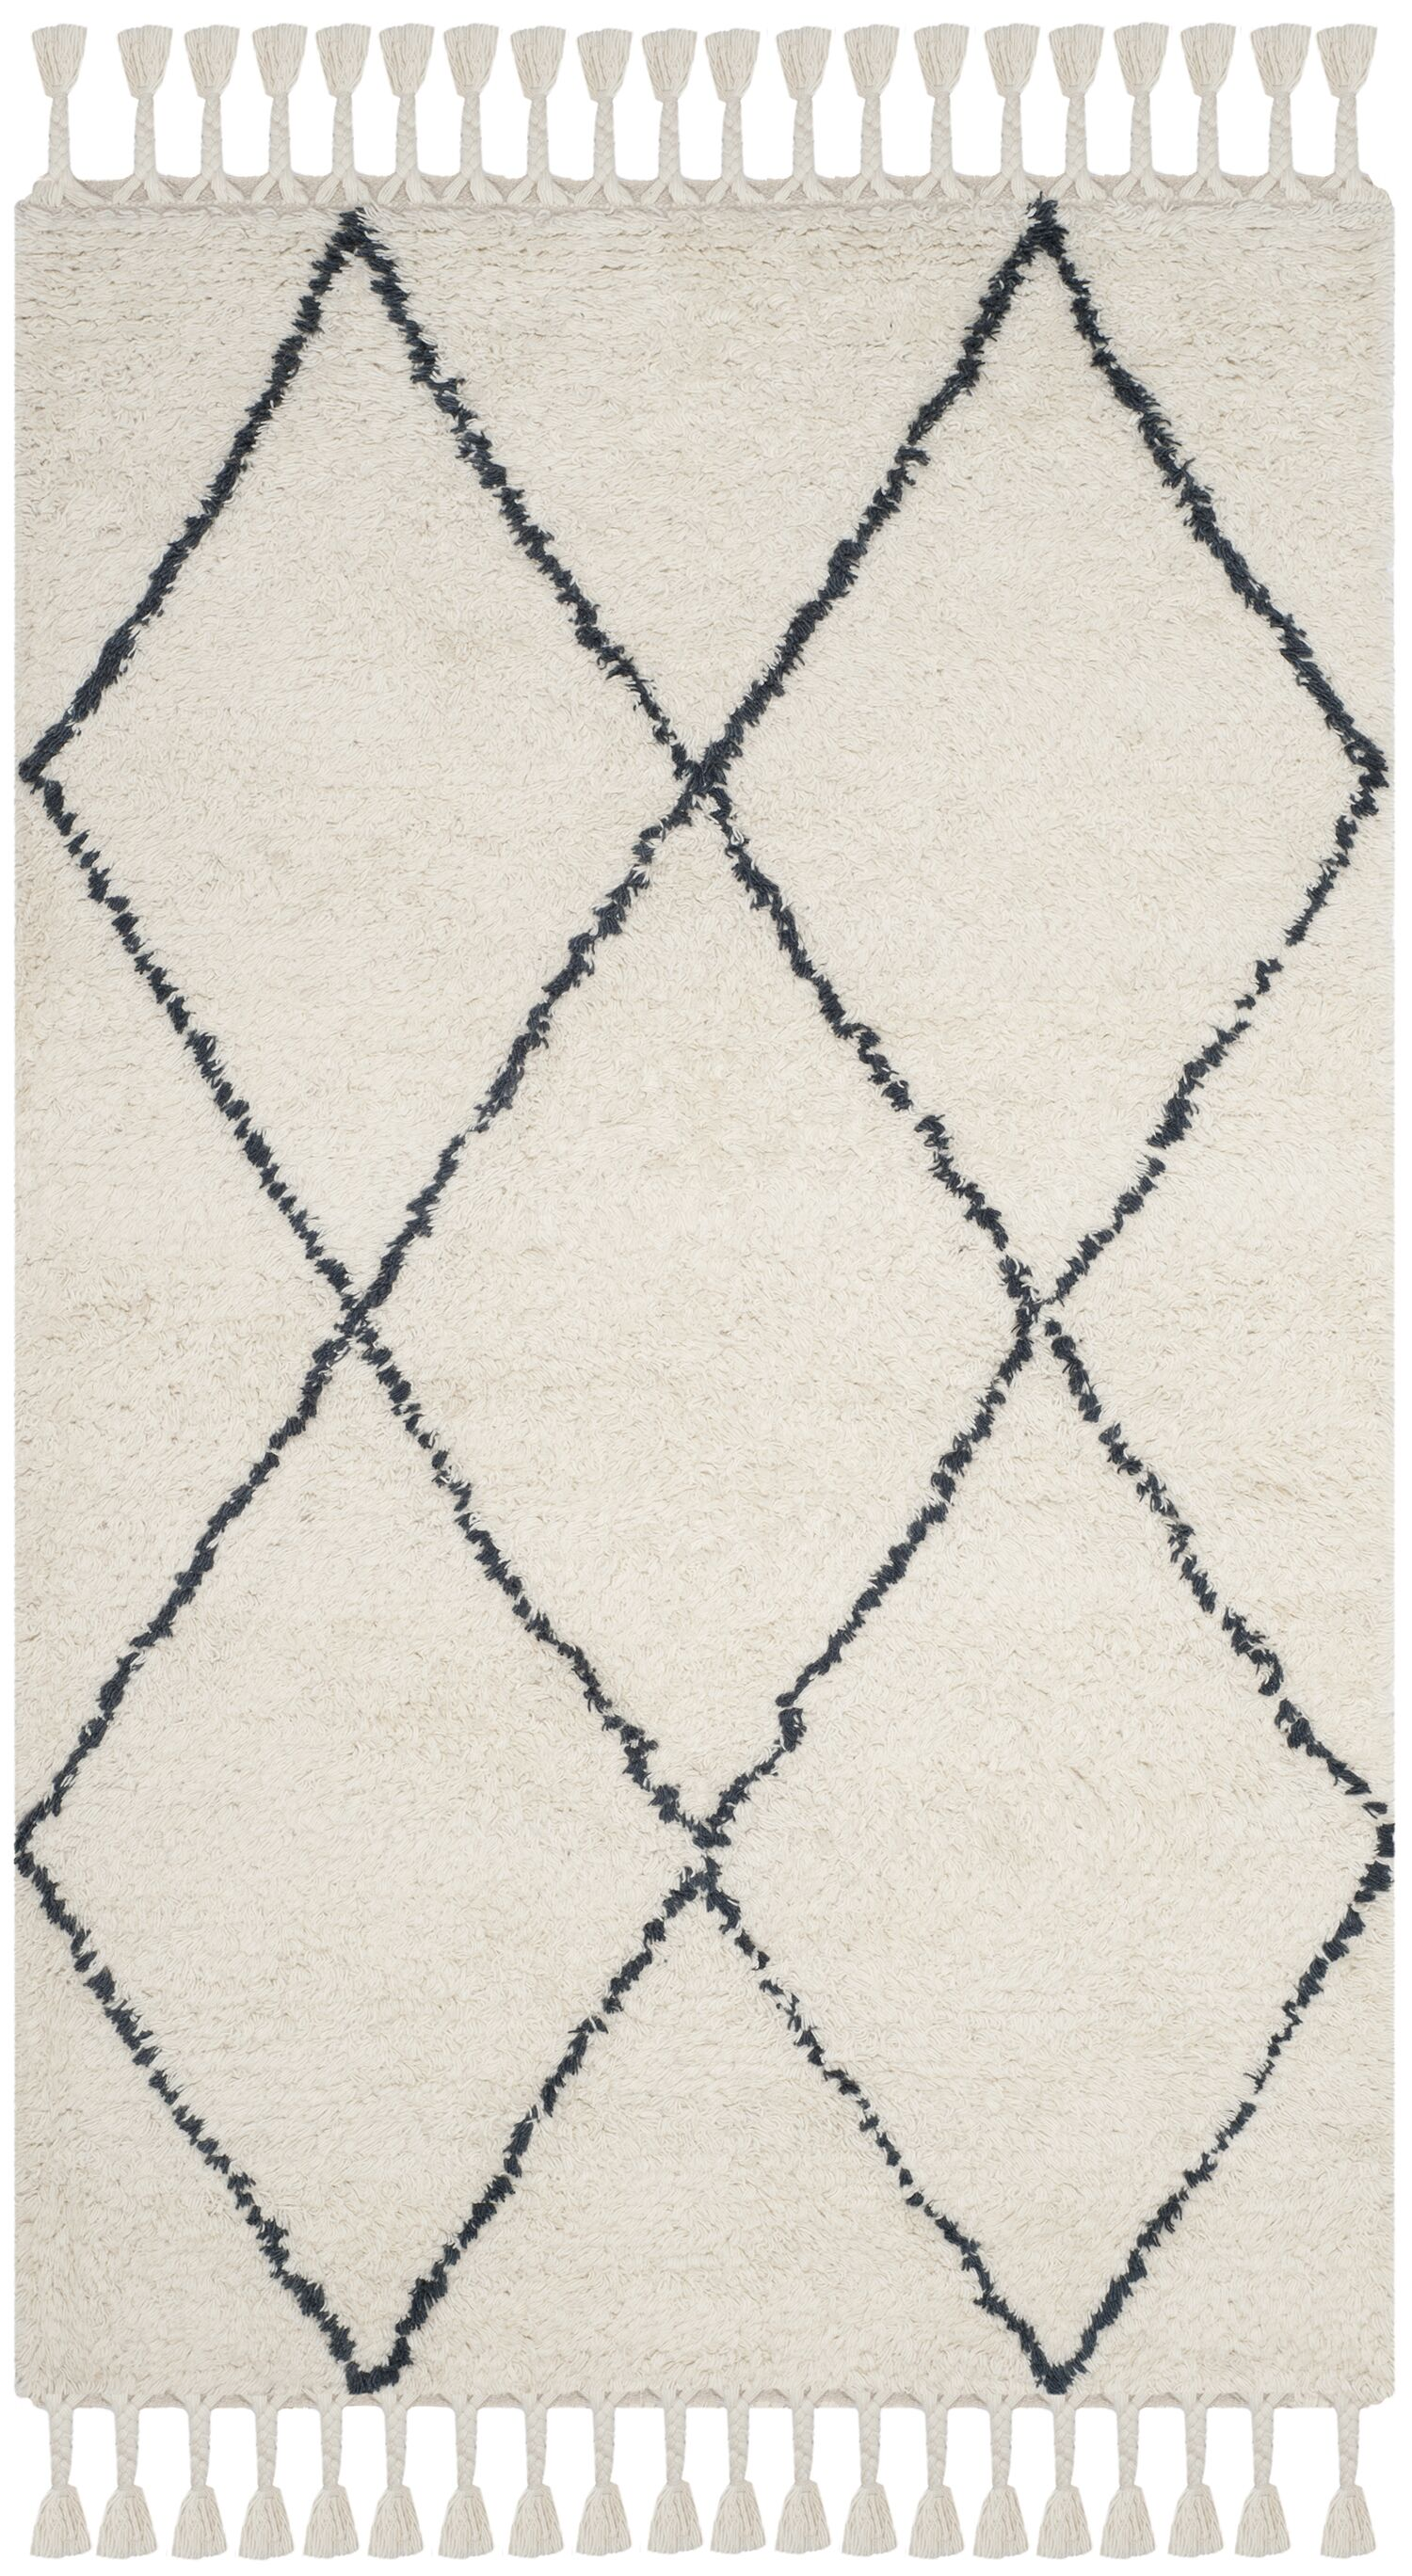 Lockheart Hand-Tufted Beige/Black Area Rug Rug Size: Rectangle 5' x 8'